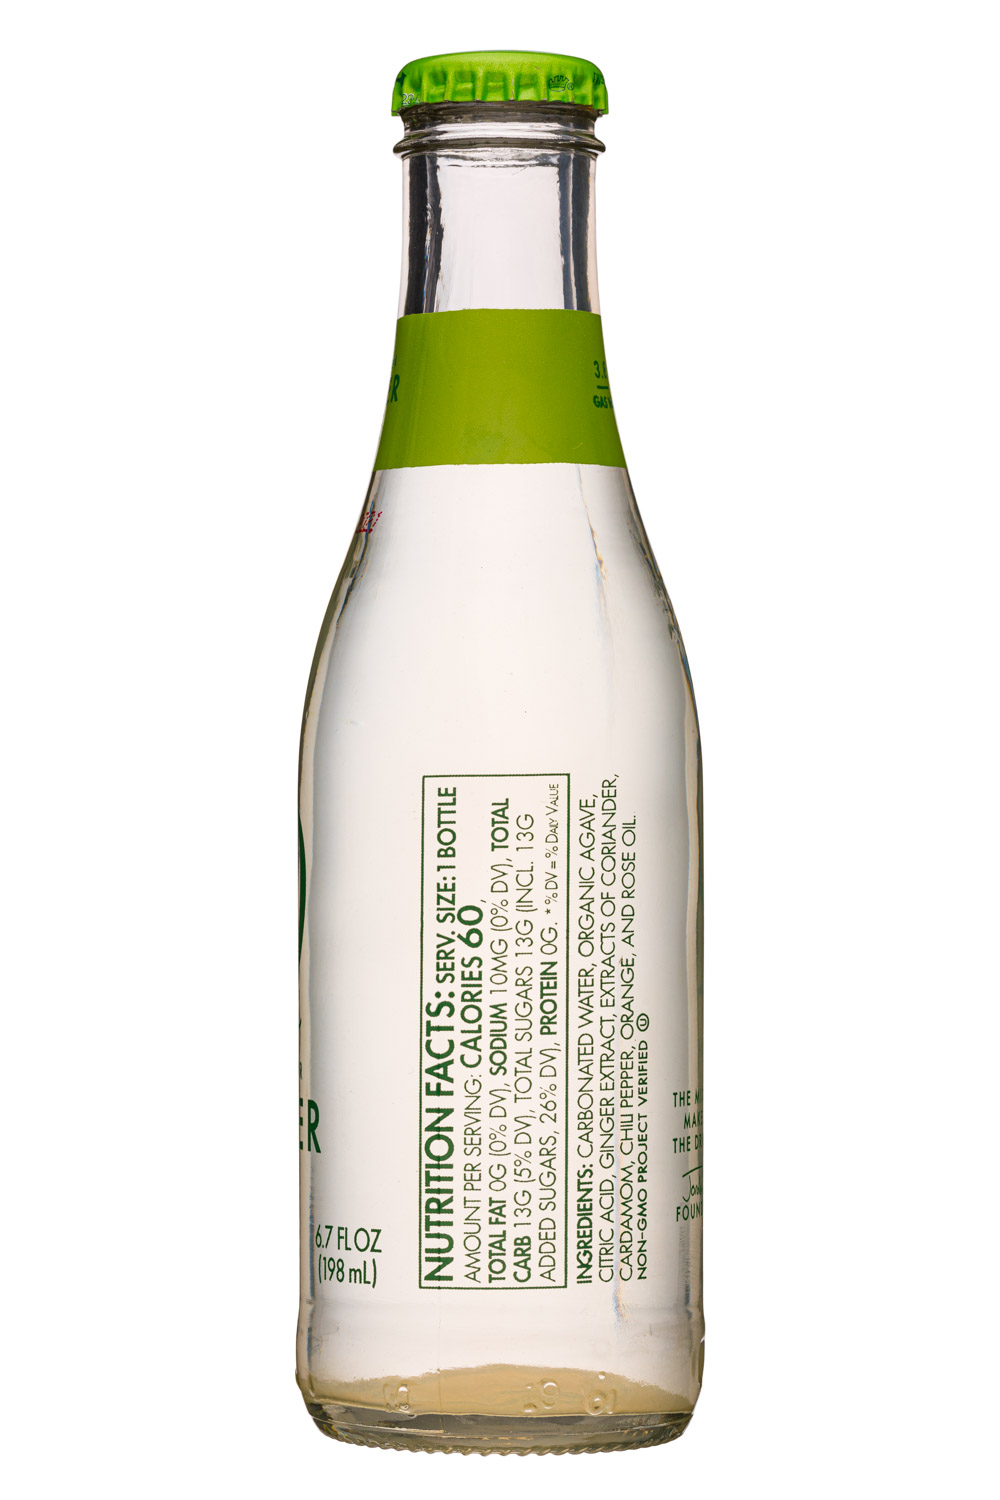 Q drinks: QDrinks-7oz-GingerAle-Facts